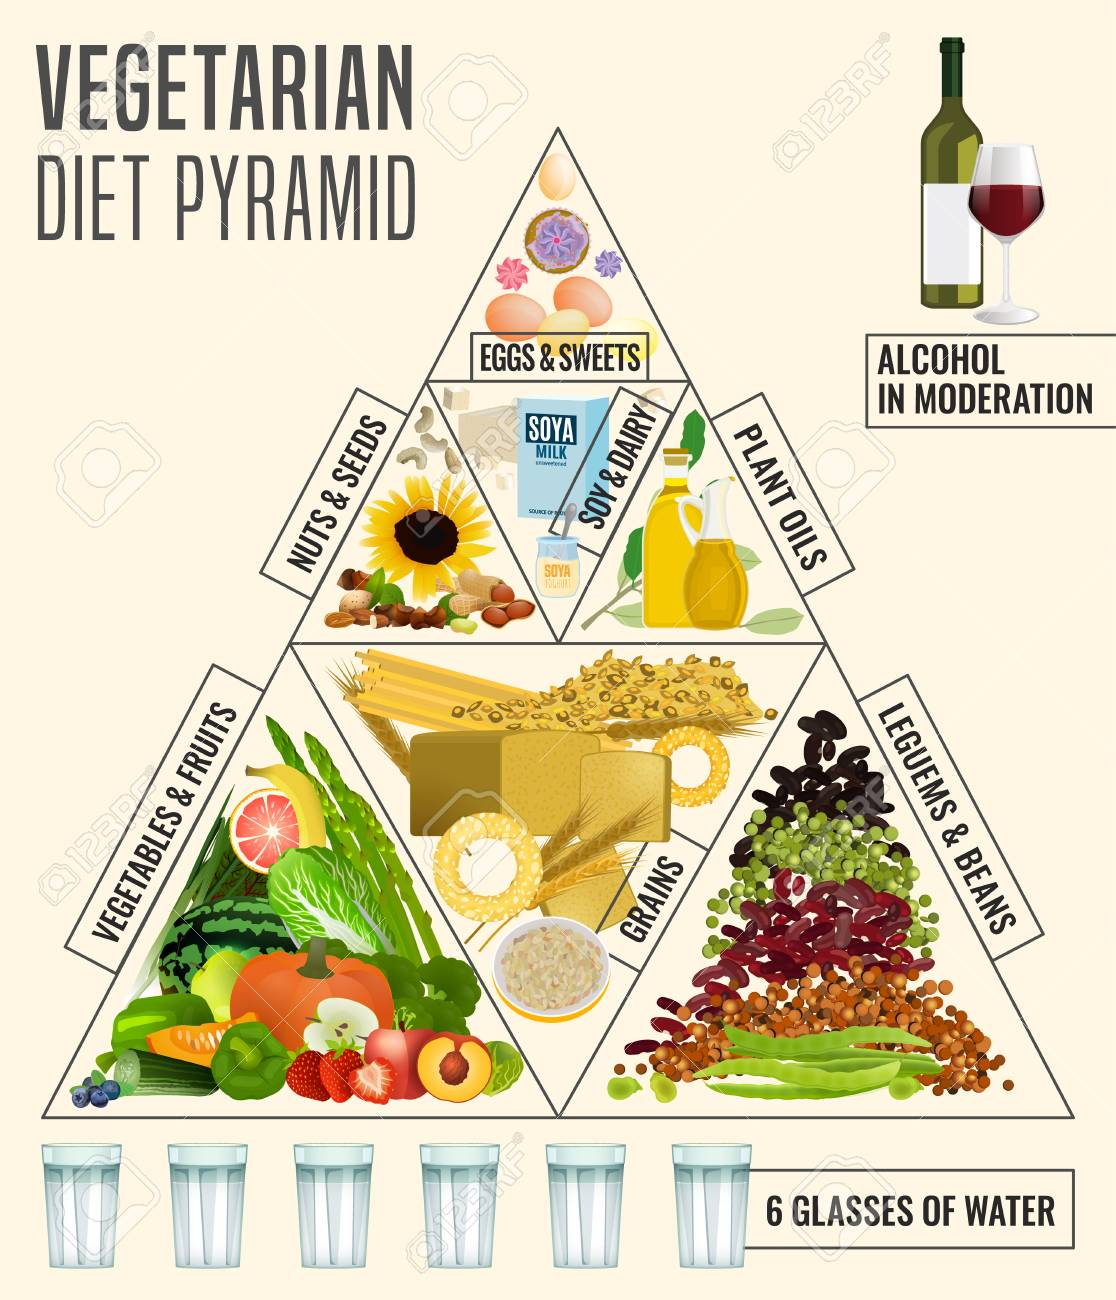 Vegetarian food pyramid. Editable vector illustration isolated on a light background. Medical, healthcare and dietary poster. Healthy dieting concept. Vertical format - 117105598